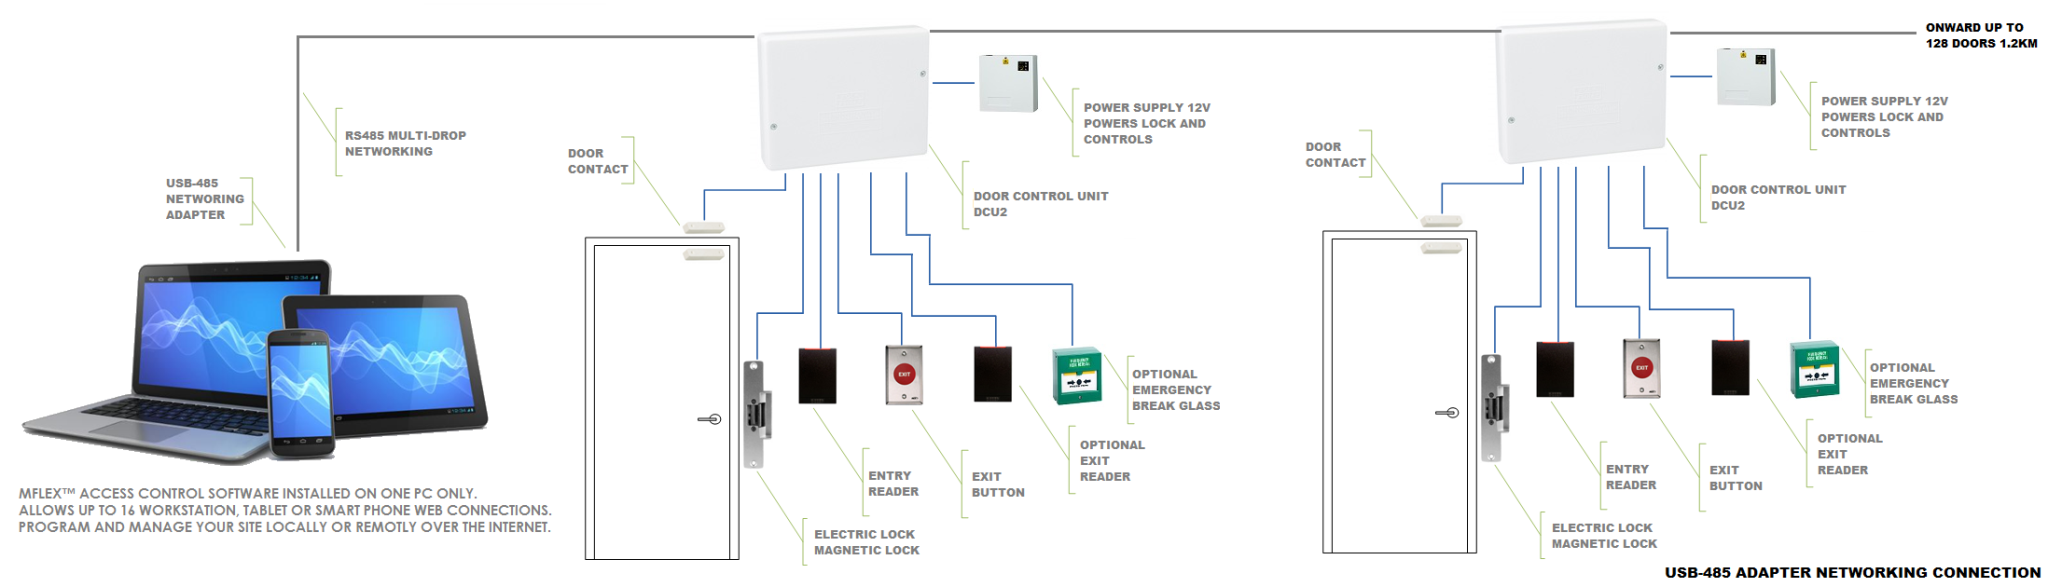 solo_wiring_network_1 mflex™ access control detailed kantech wiring diagram at bakdesigns.co